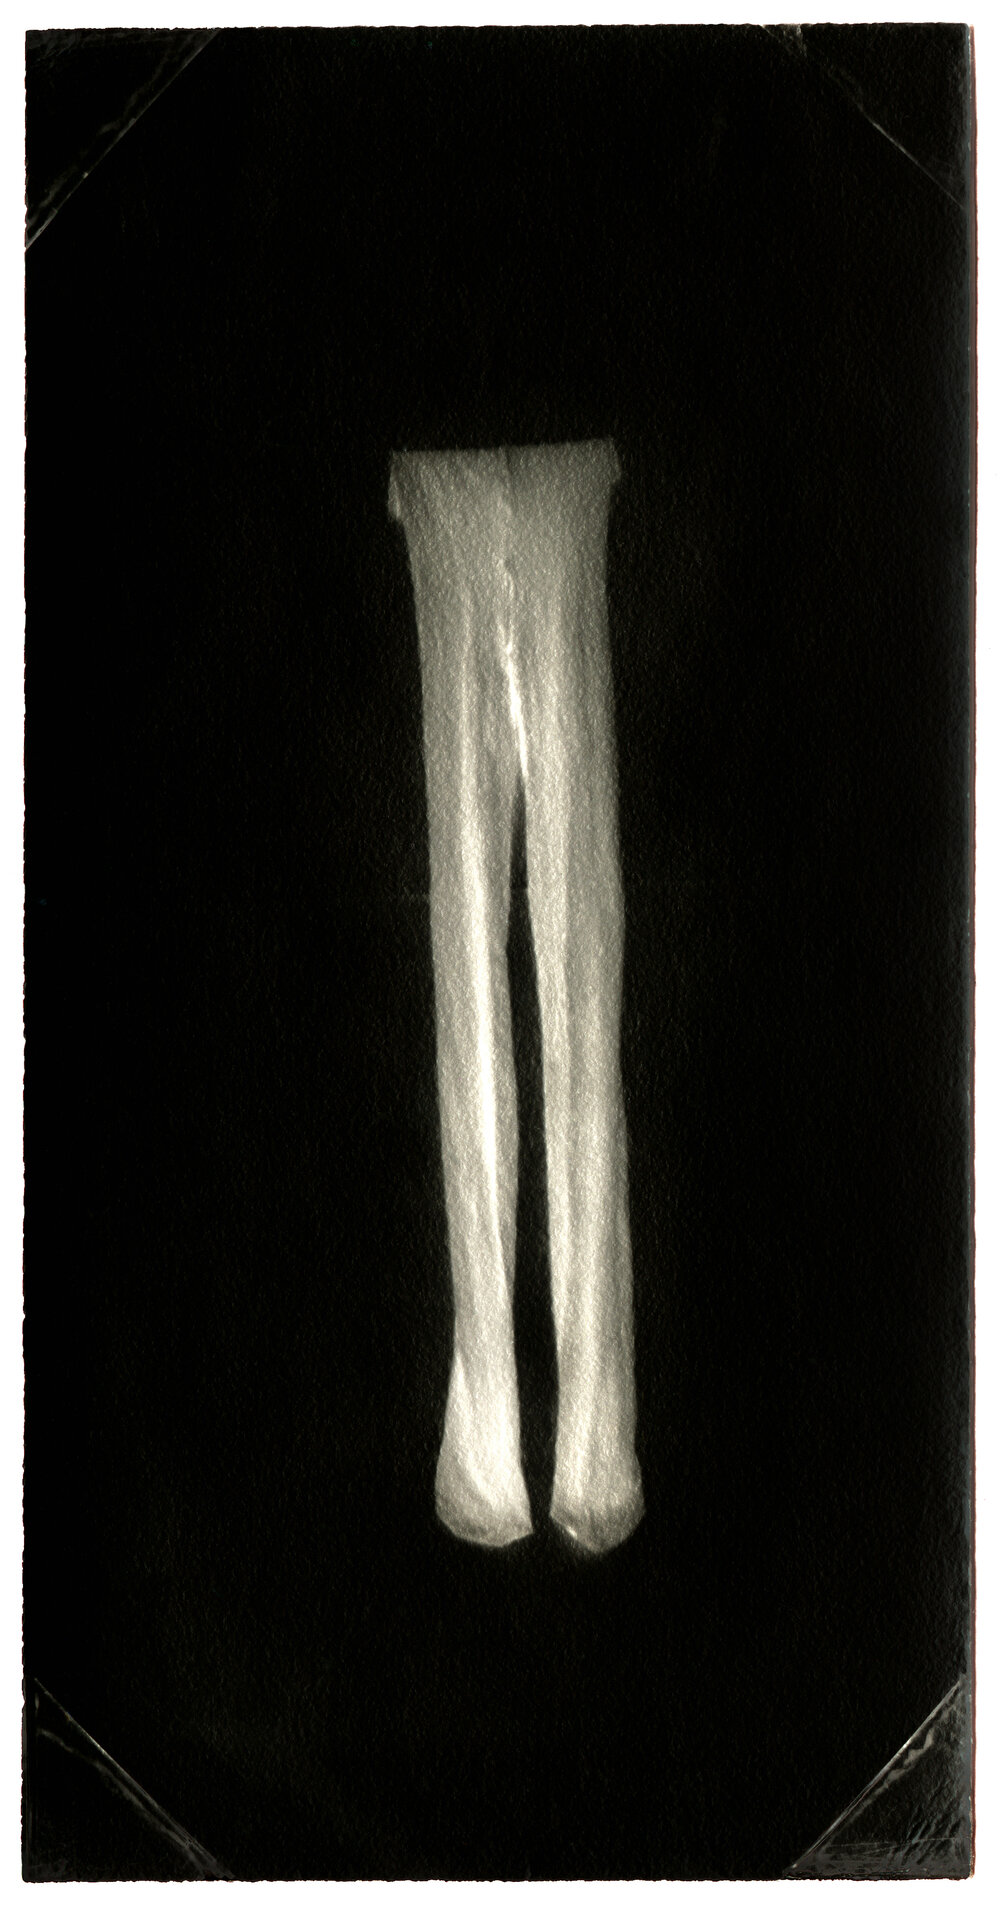 Untitled (Stretched Tights) . Toned gelatin silver print. 3 1/2 x 1 1/2 in.